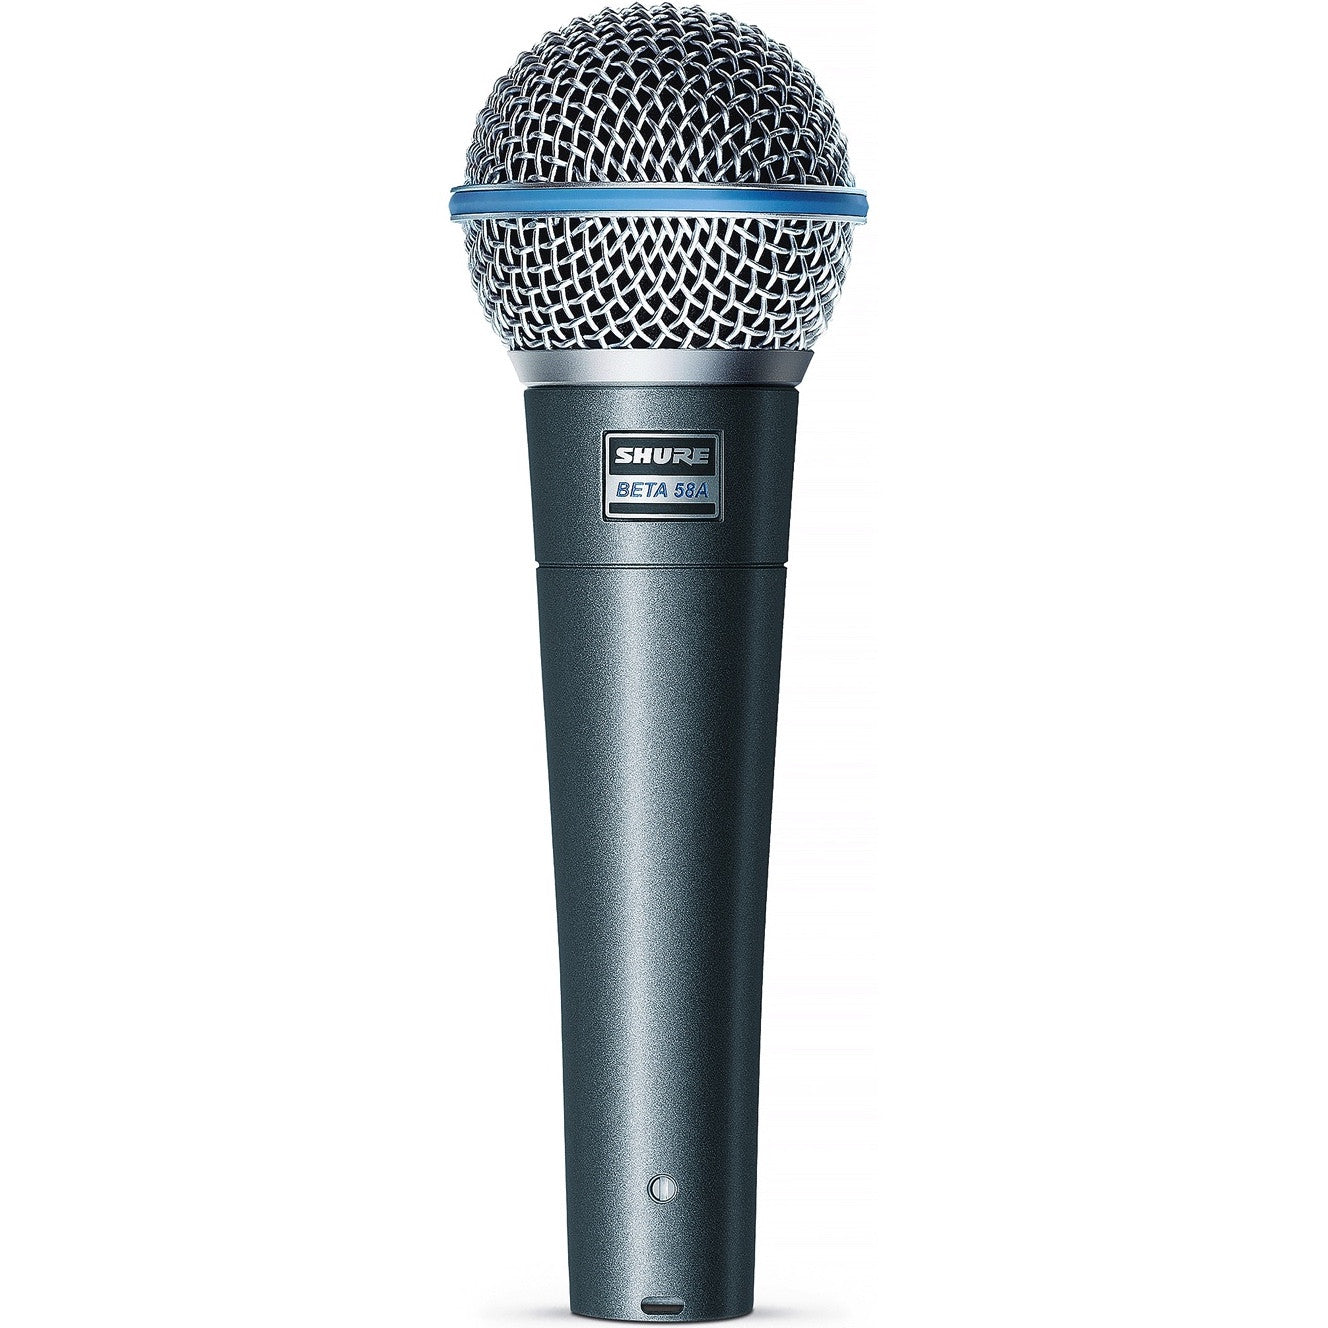 shure beta 58a handheld dynamic vocal microphone music experience online south africa. Black Bedroom Furniture Sets. Home Design Ideas